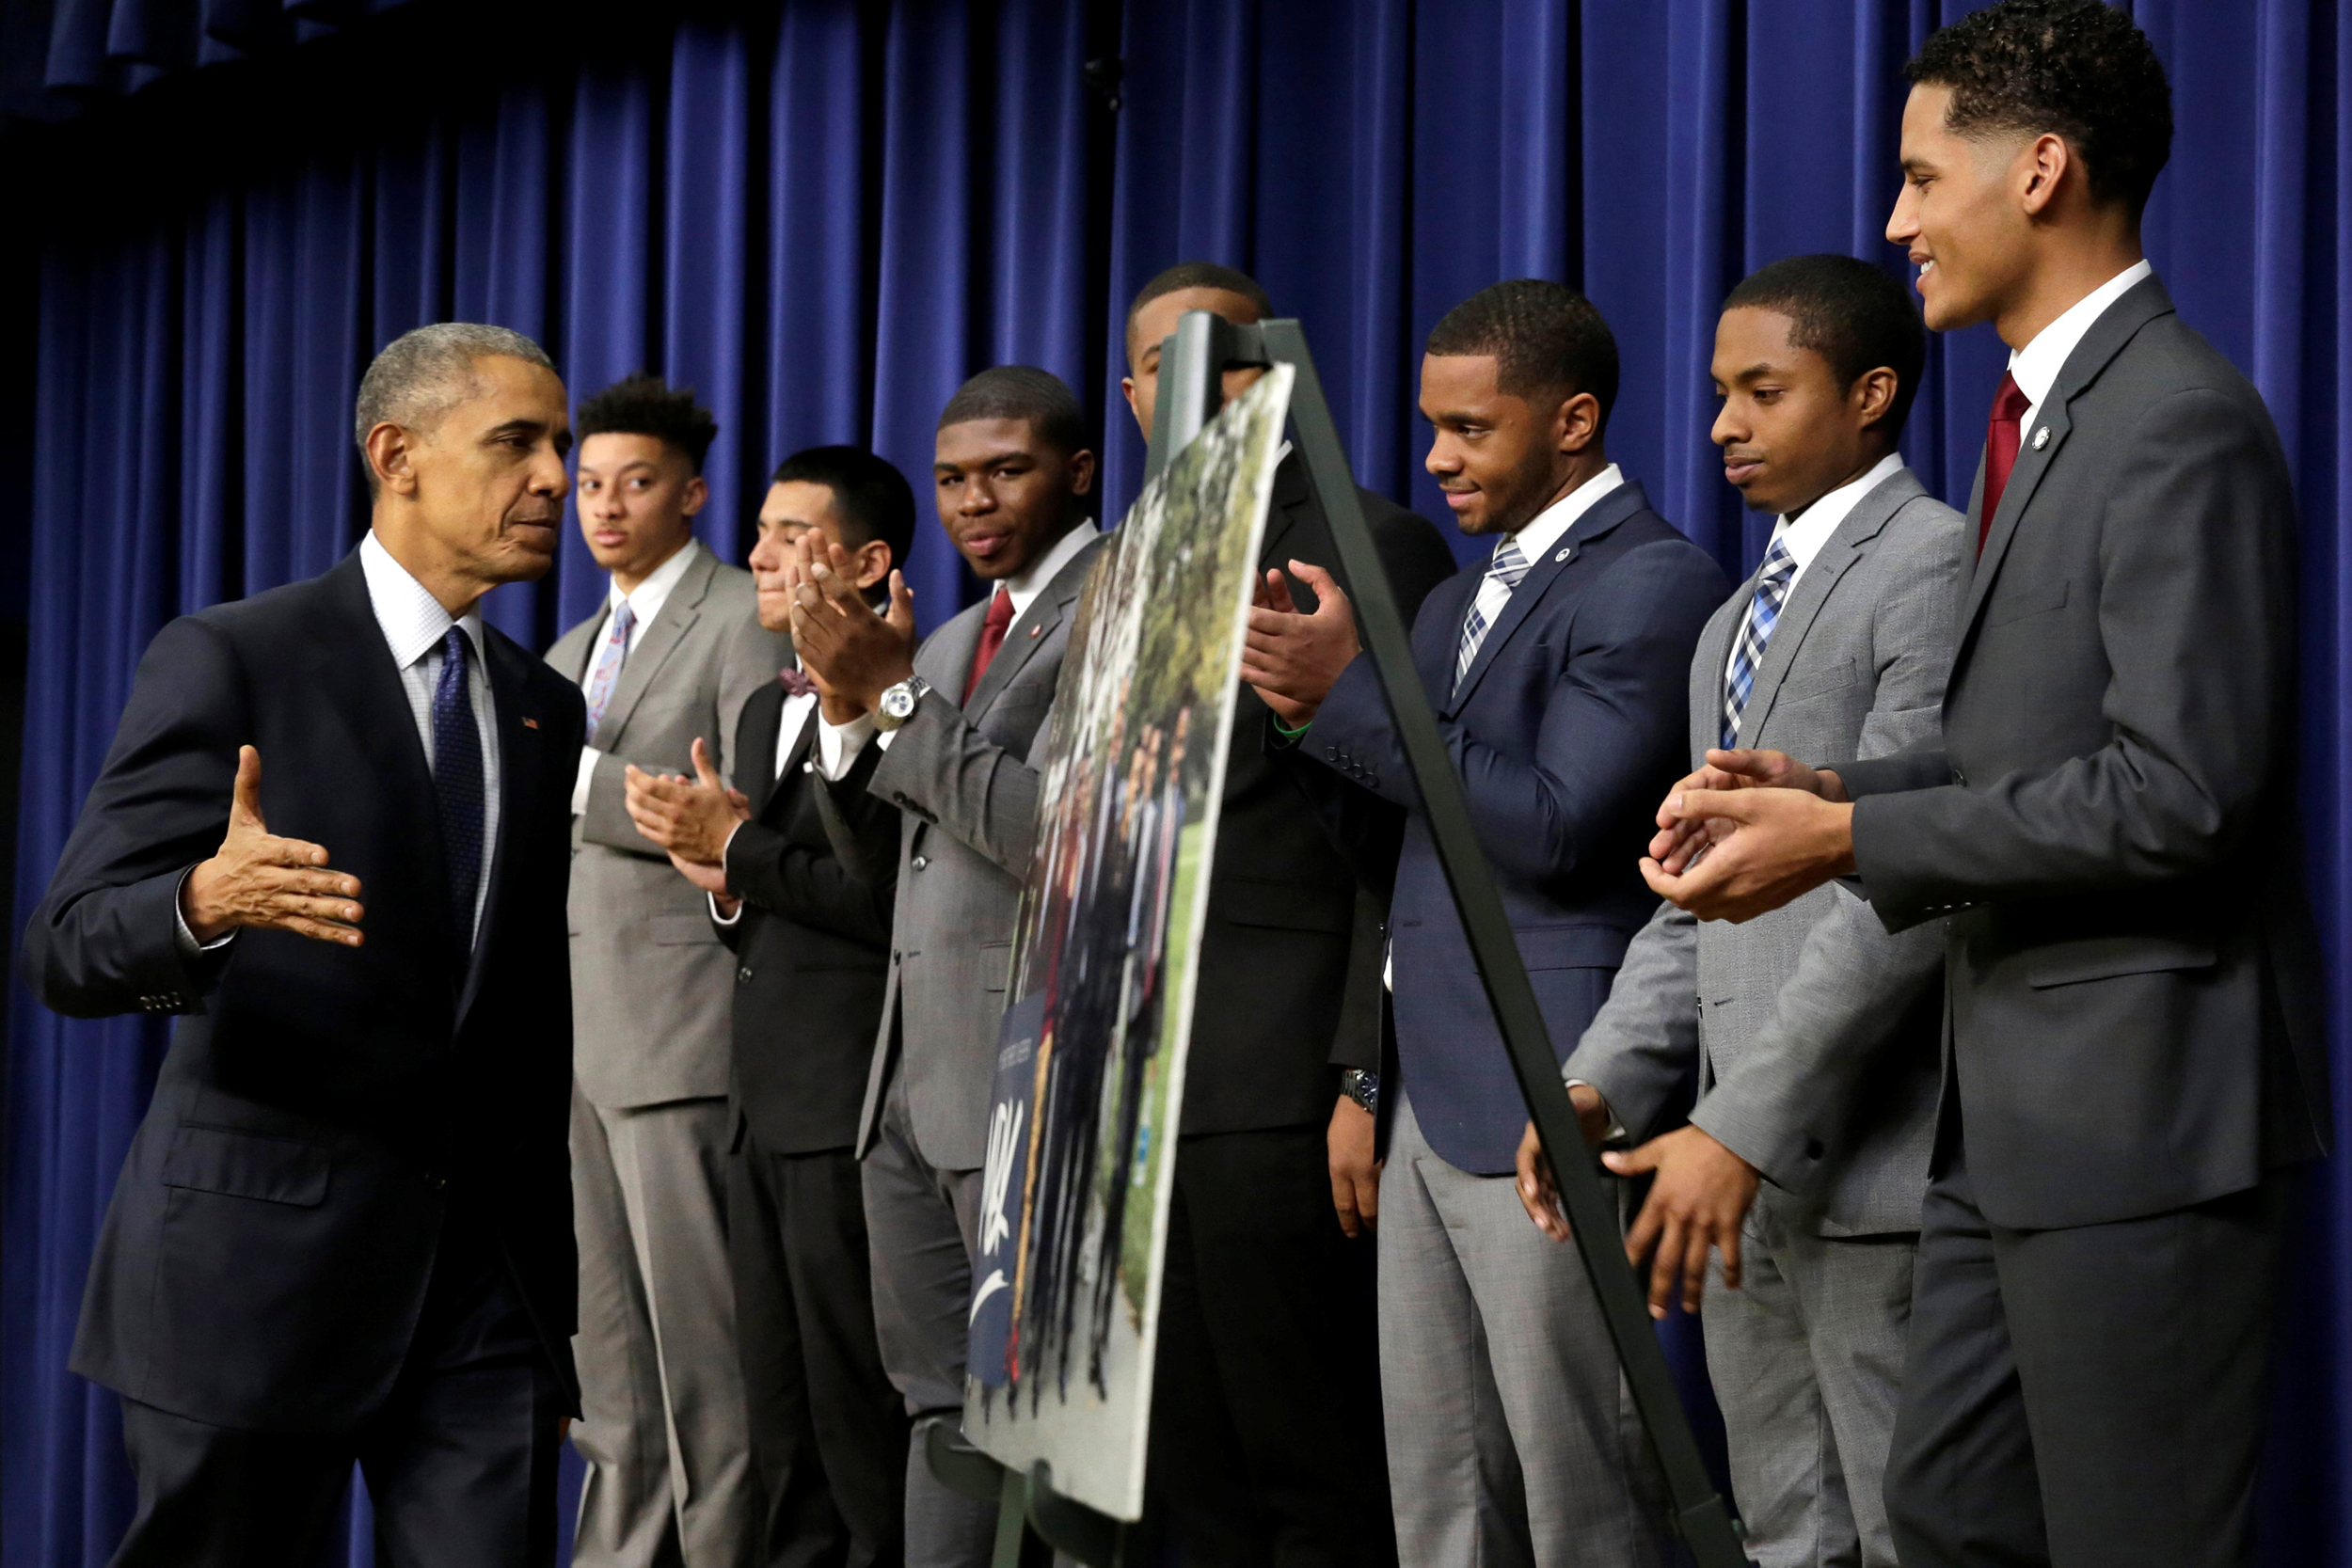 U.S. President Barack Obama (L) greets attendees at the My Brother's Keeper Summit at the South Court Auditorium of the White House in Washington, U.S., December 14, 2016.